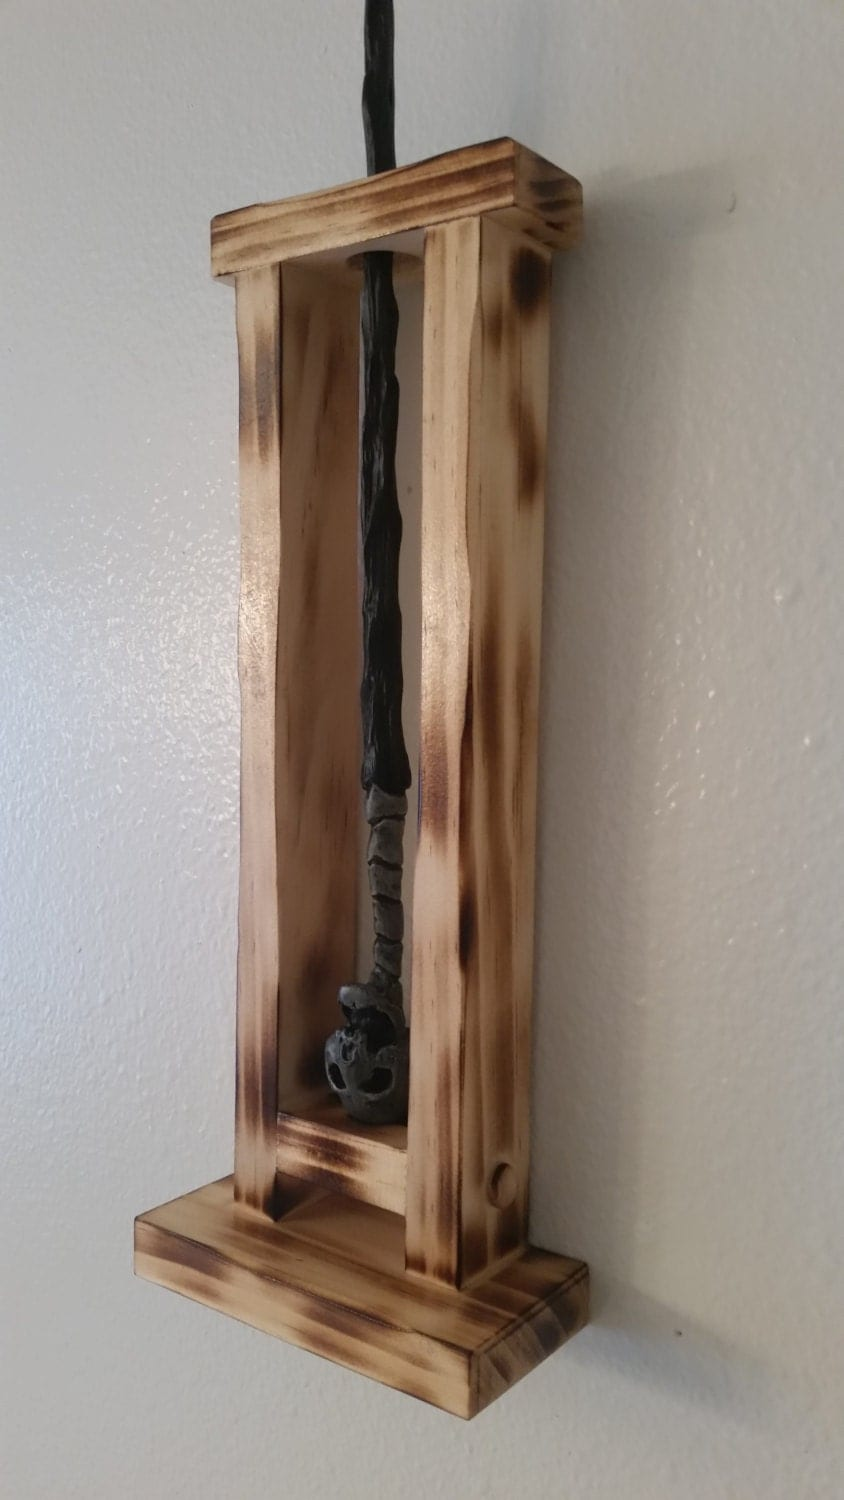 magic wand custom single wand holder wall mounted by naturesmoon. Black Bedroom Furniture Sets. Home Design Ideas